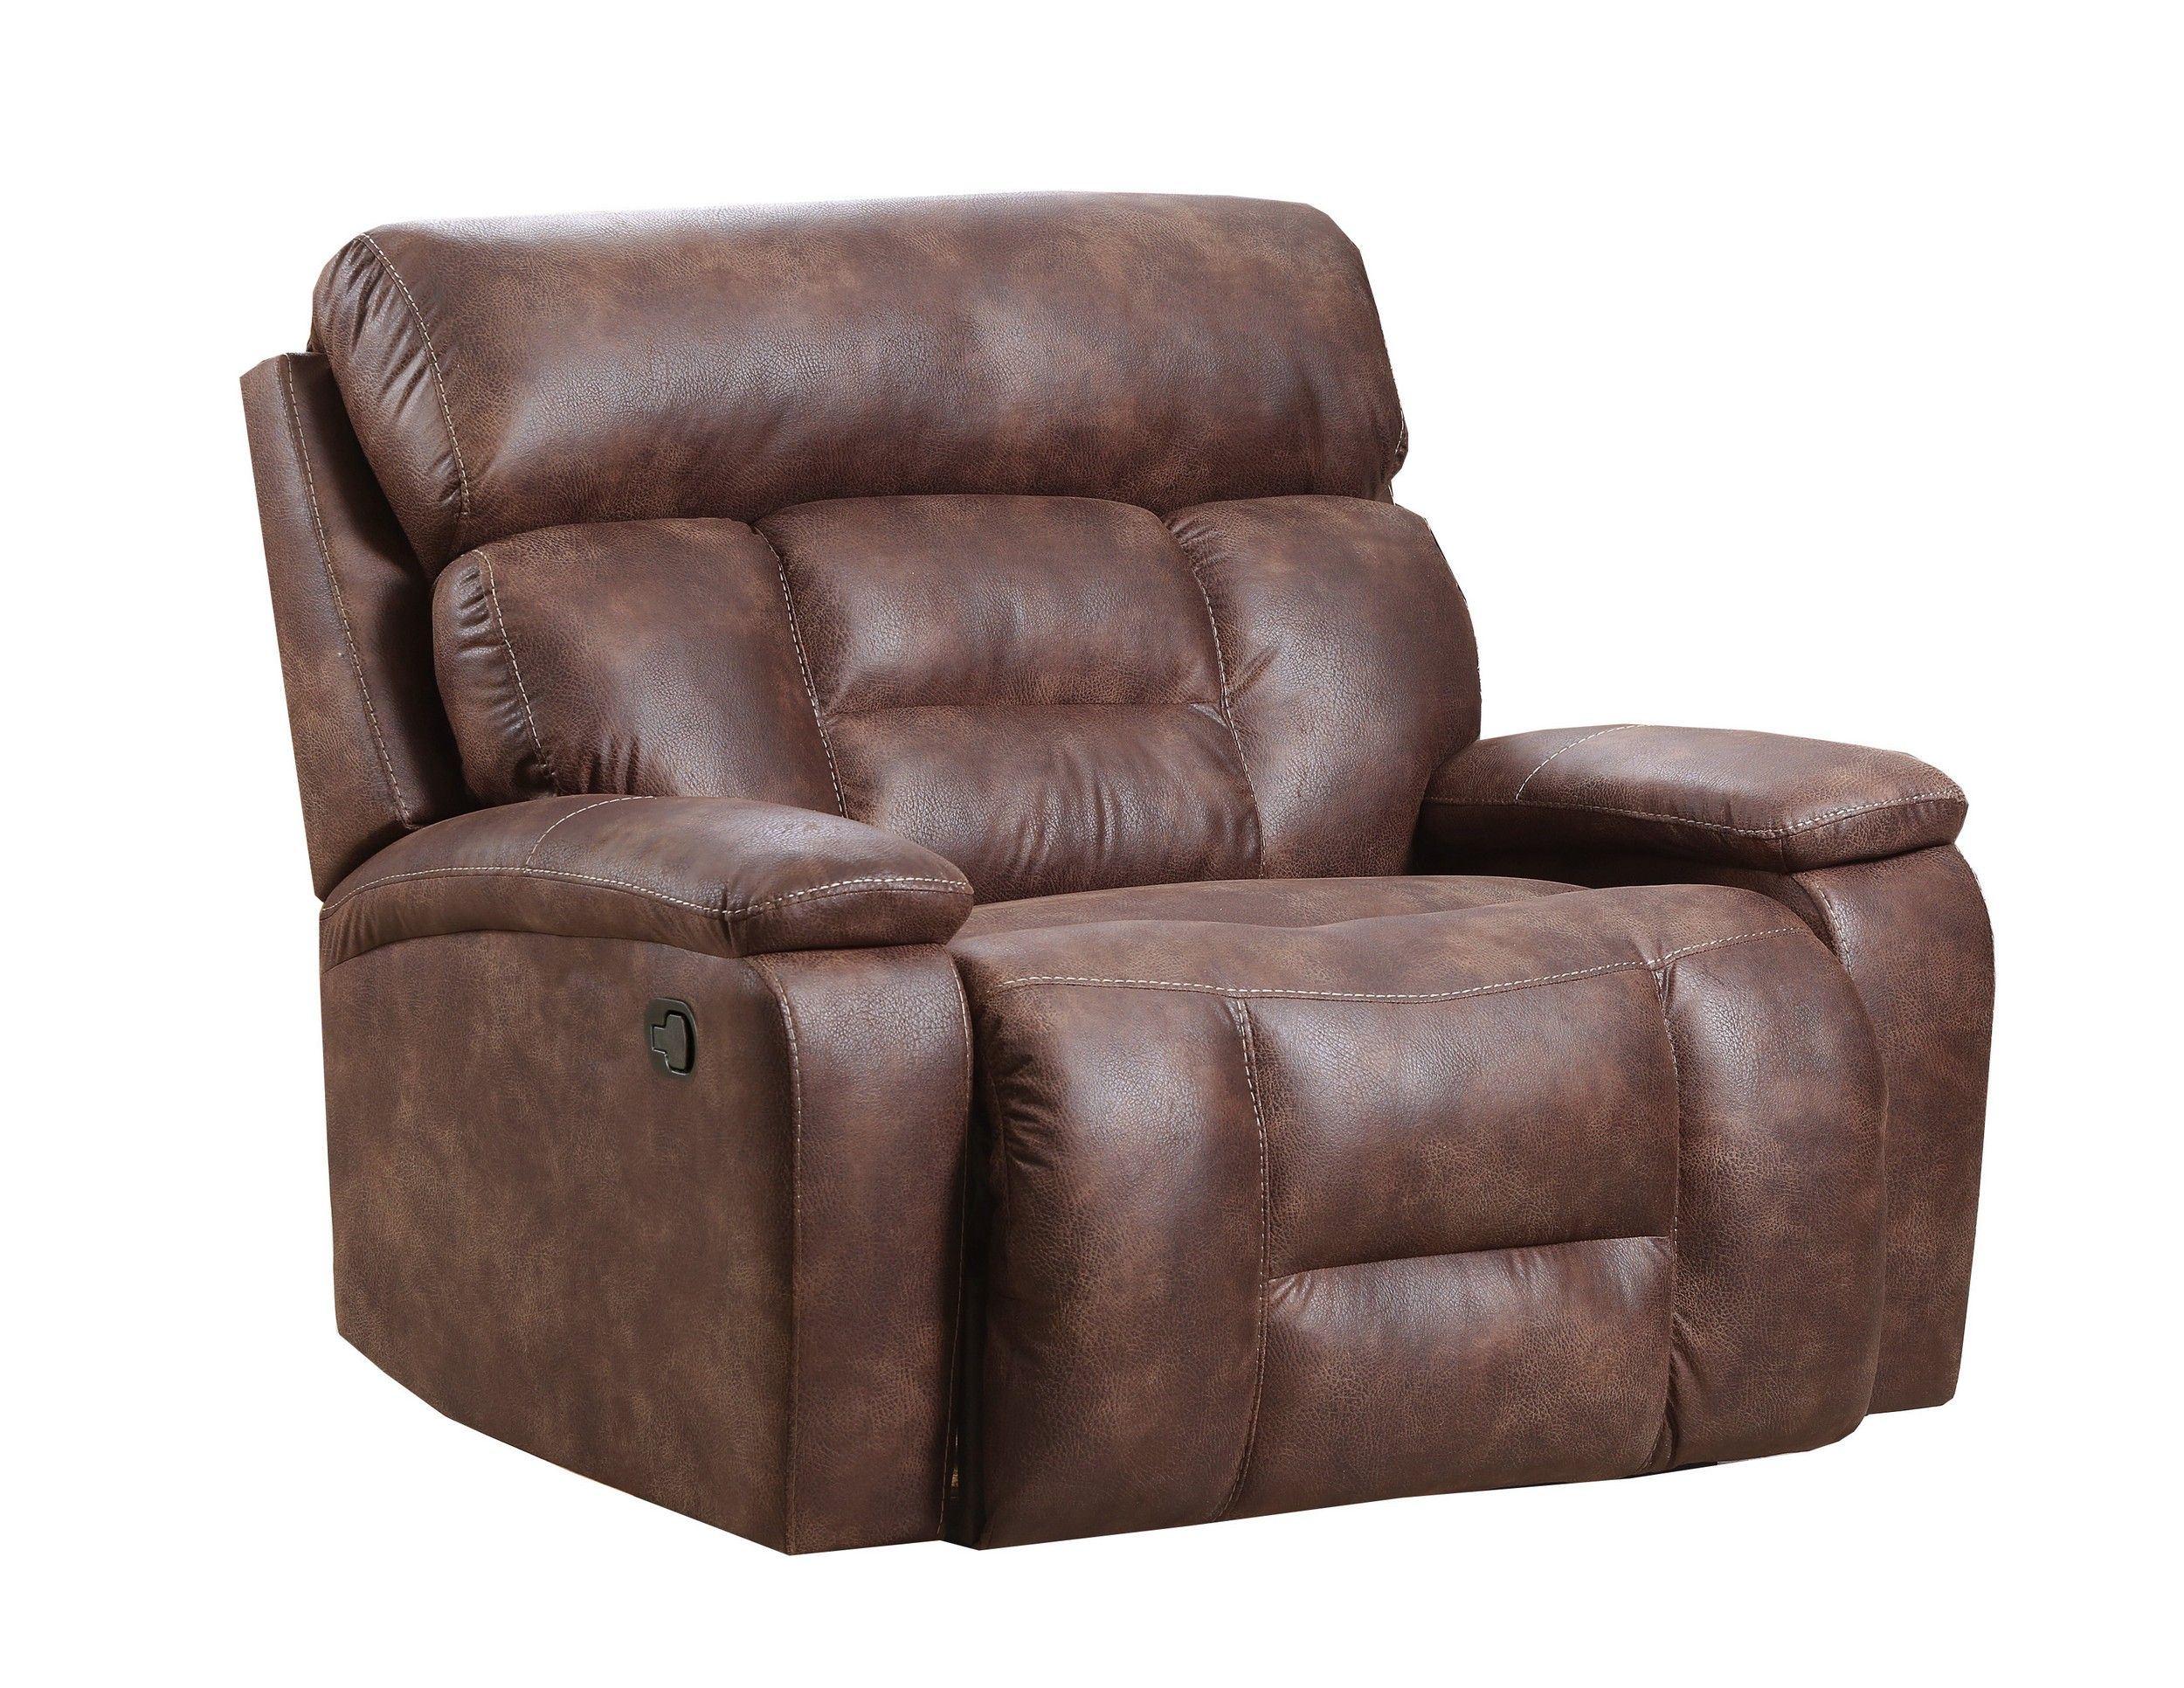 Simmons Upholstery Dorado Walnut Cuddler Recliner Reviews